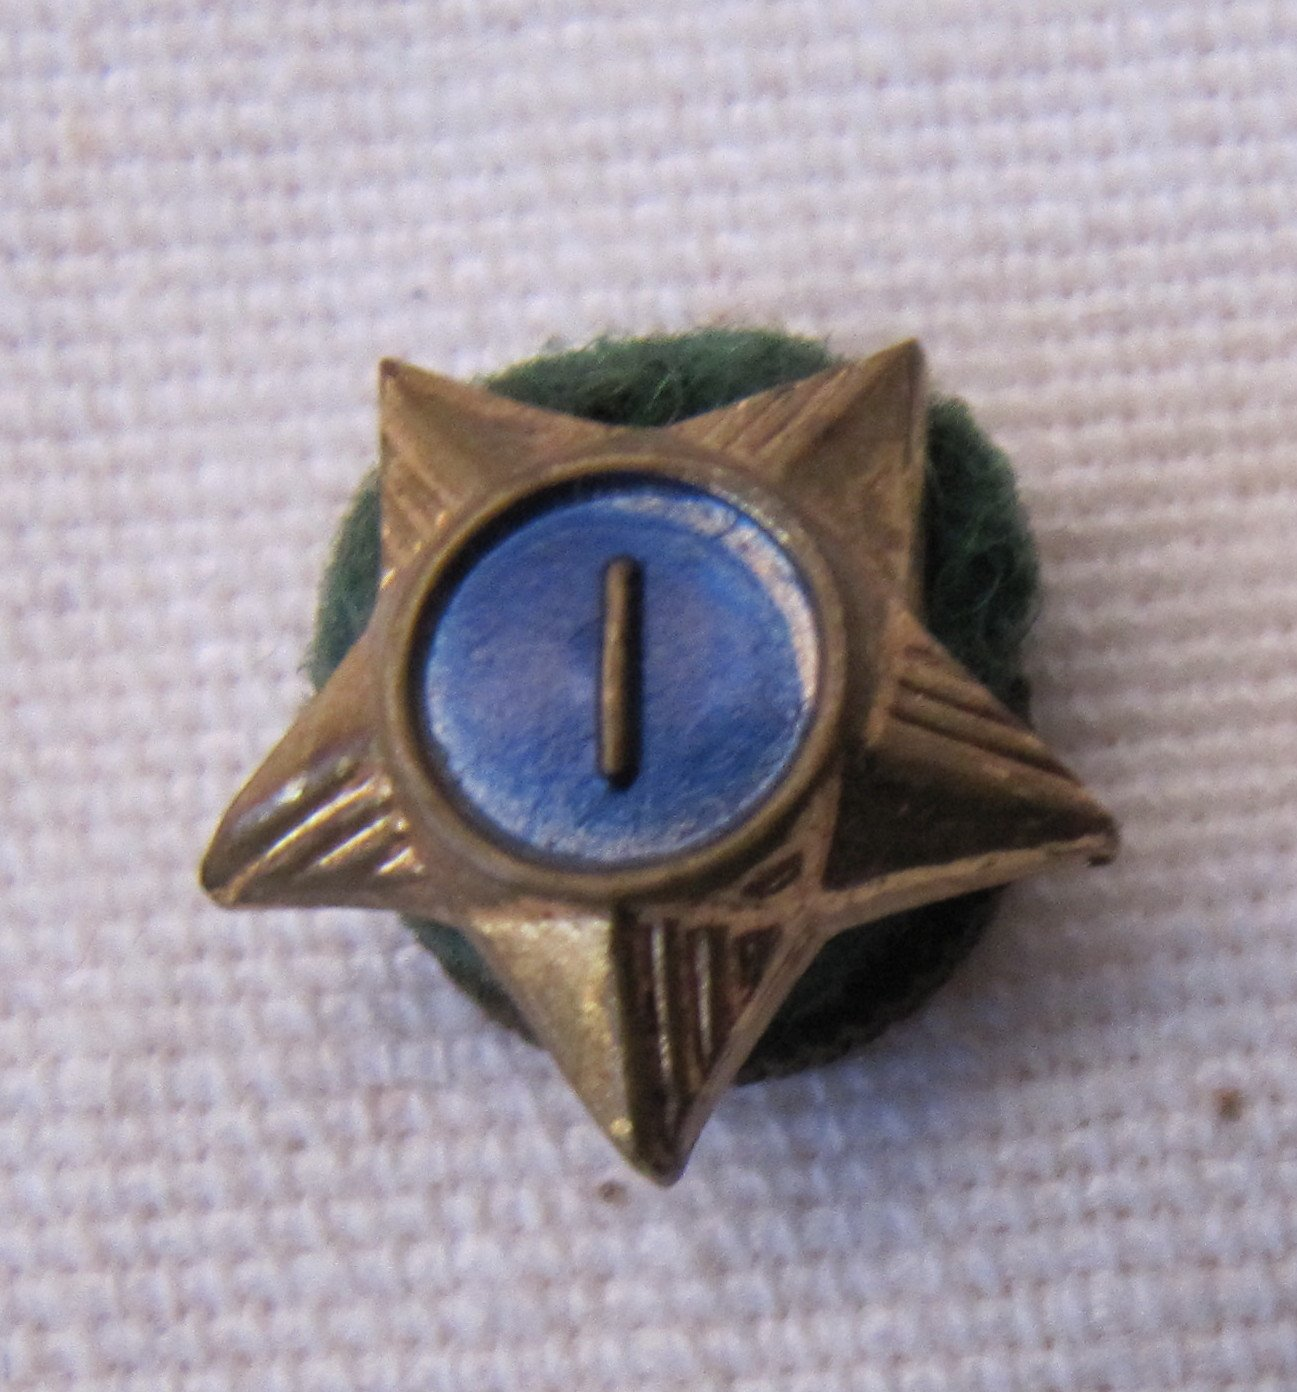 Vintage Cub Scout Service Star Pin Year 1 Blue Center Felt Mounted 1/2 Inch